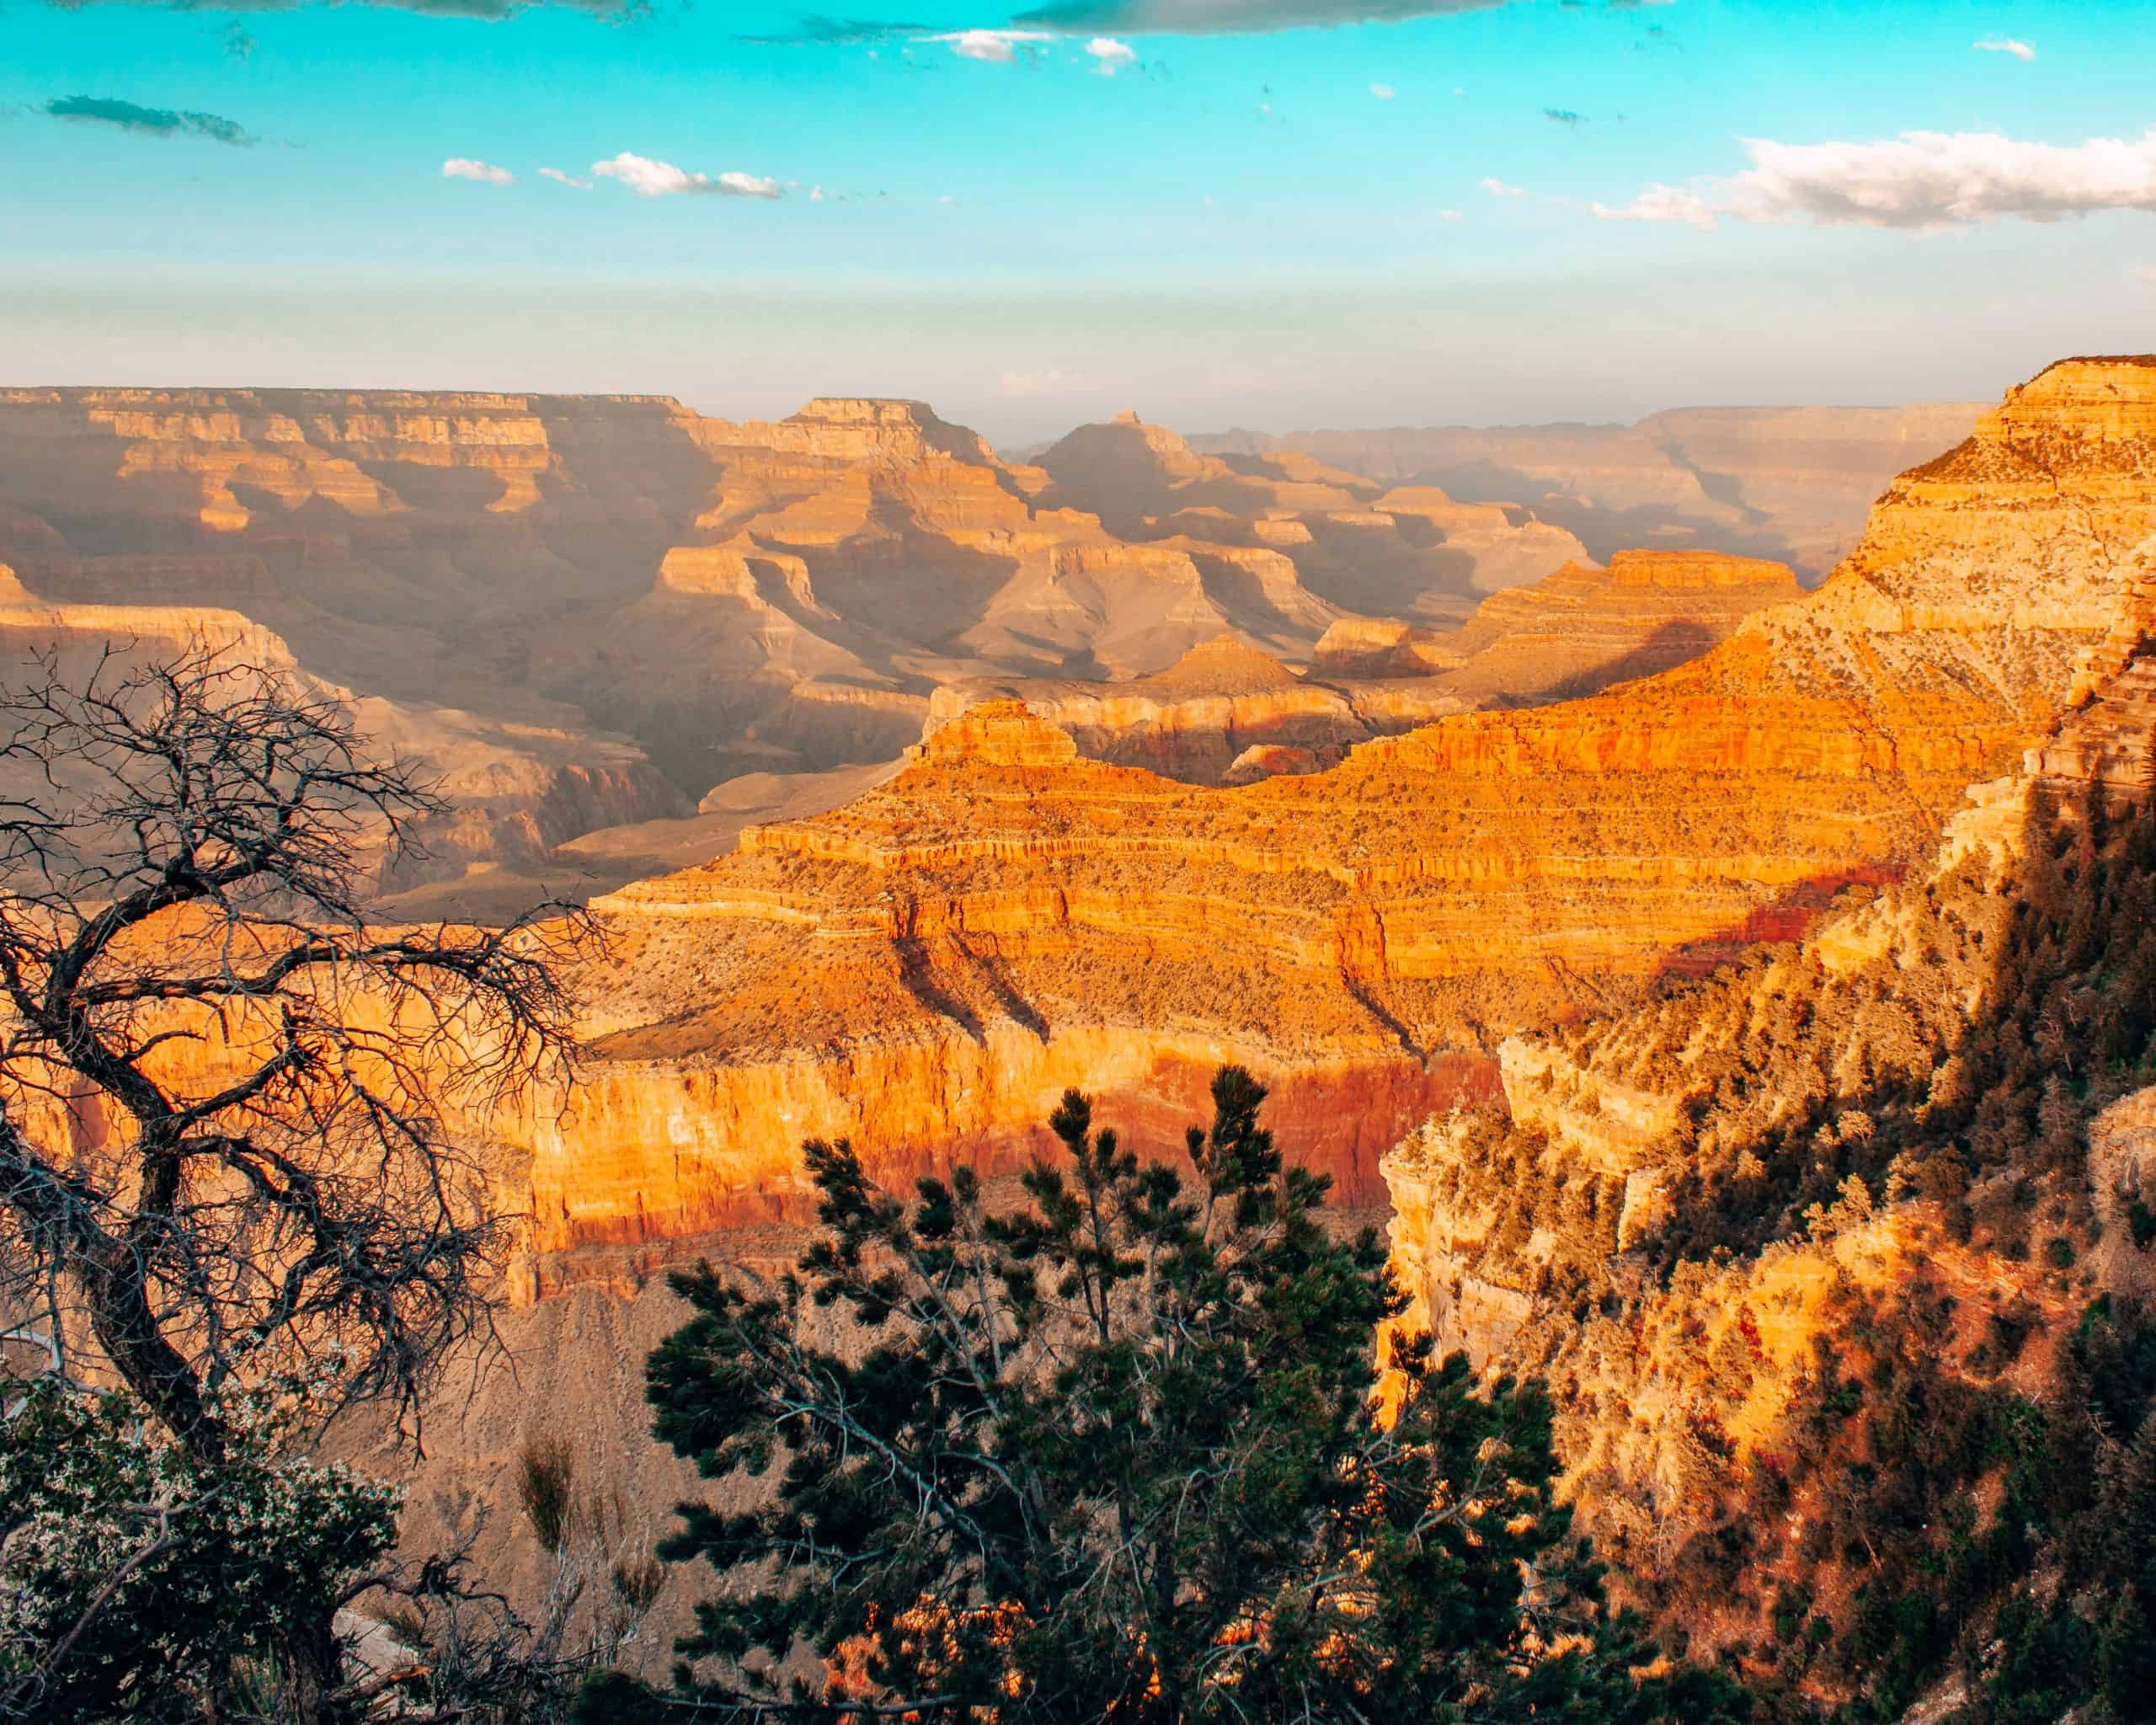 Golden Light at Sunset at Grand Canyon South Rim in Arizona